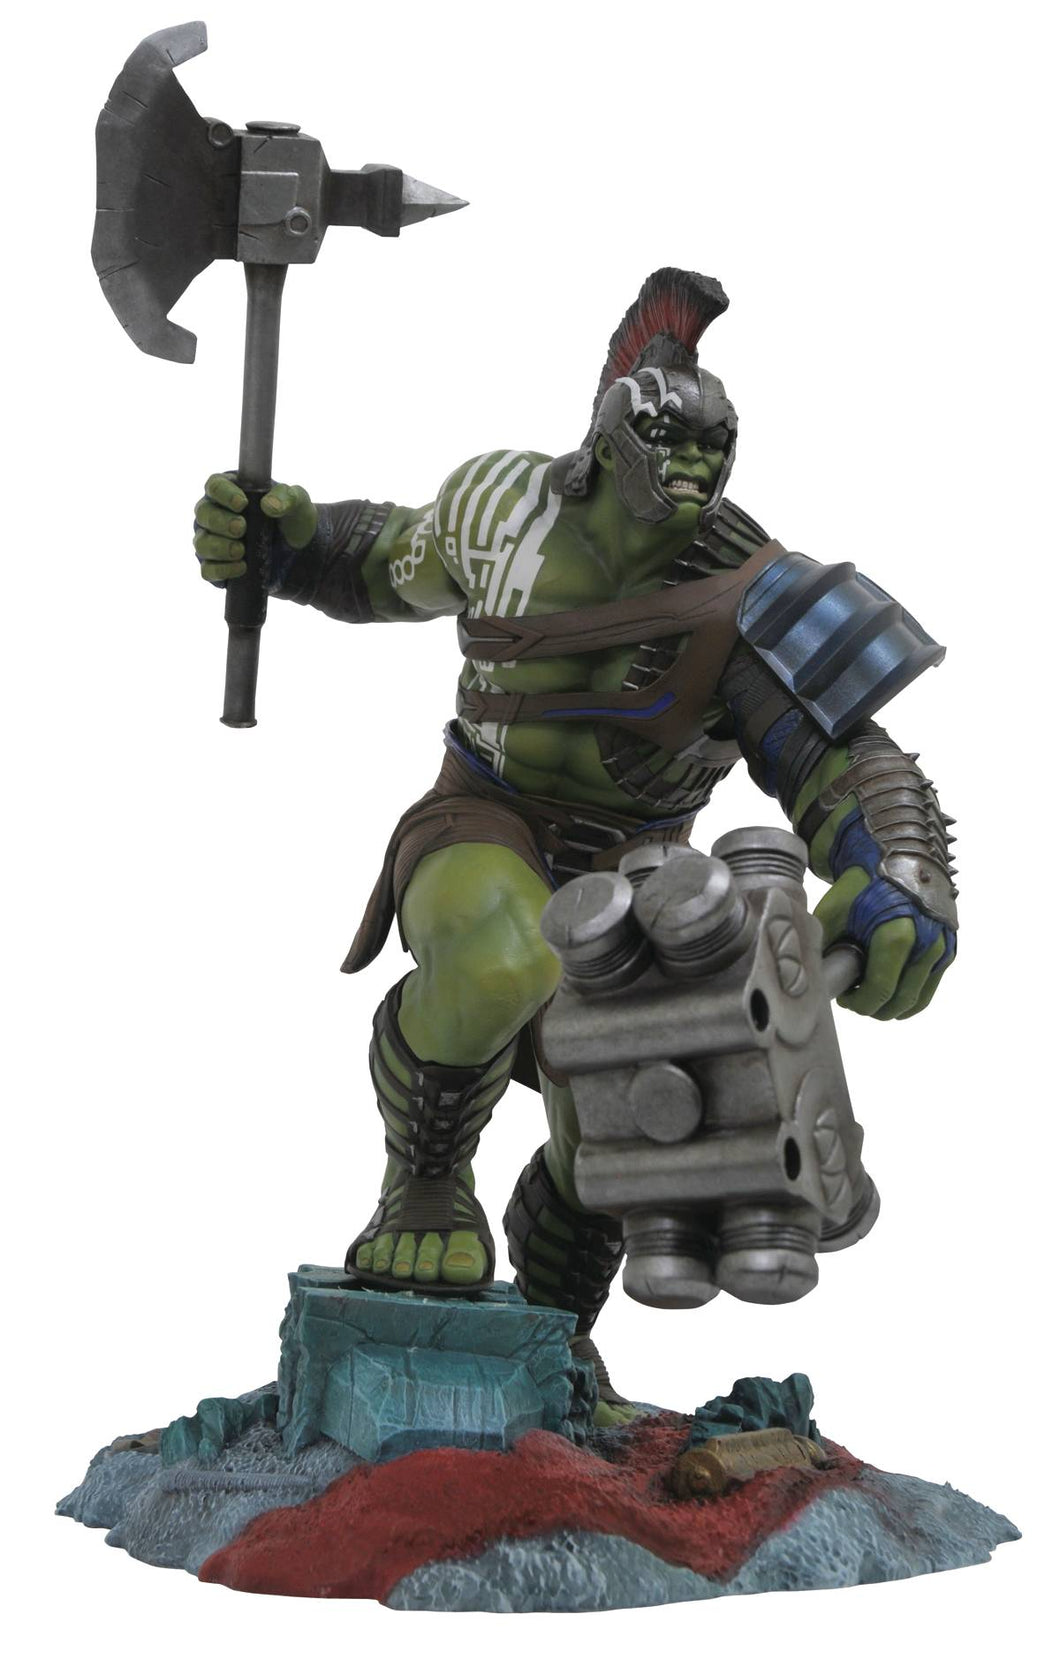 MARVEL GALLERY THOR RAGNAROK HULK PVC FIG FOC 06/01 (ADVANCE ORDER)